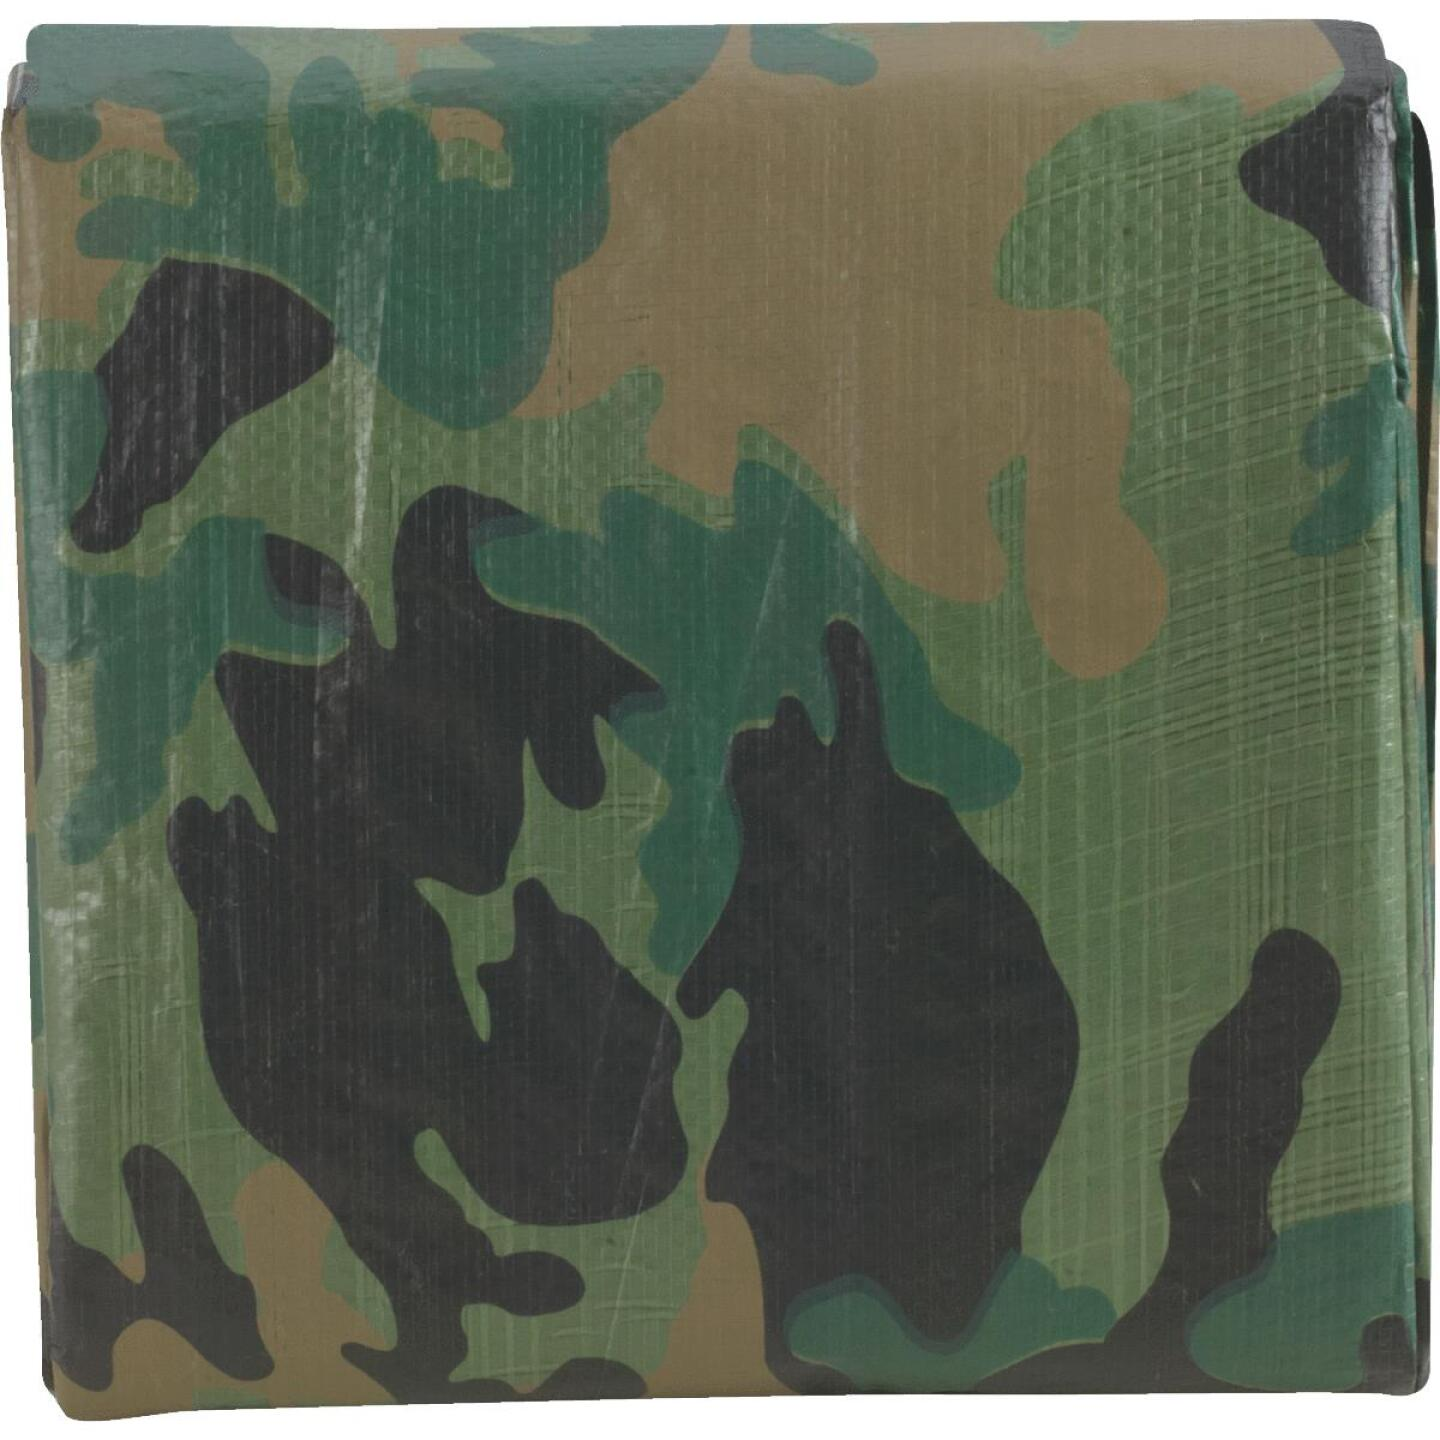 Do it Best Camo Woven 8 Ft. x 10 Ft. Medium Duty Poly Tarp Image 2